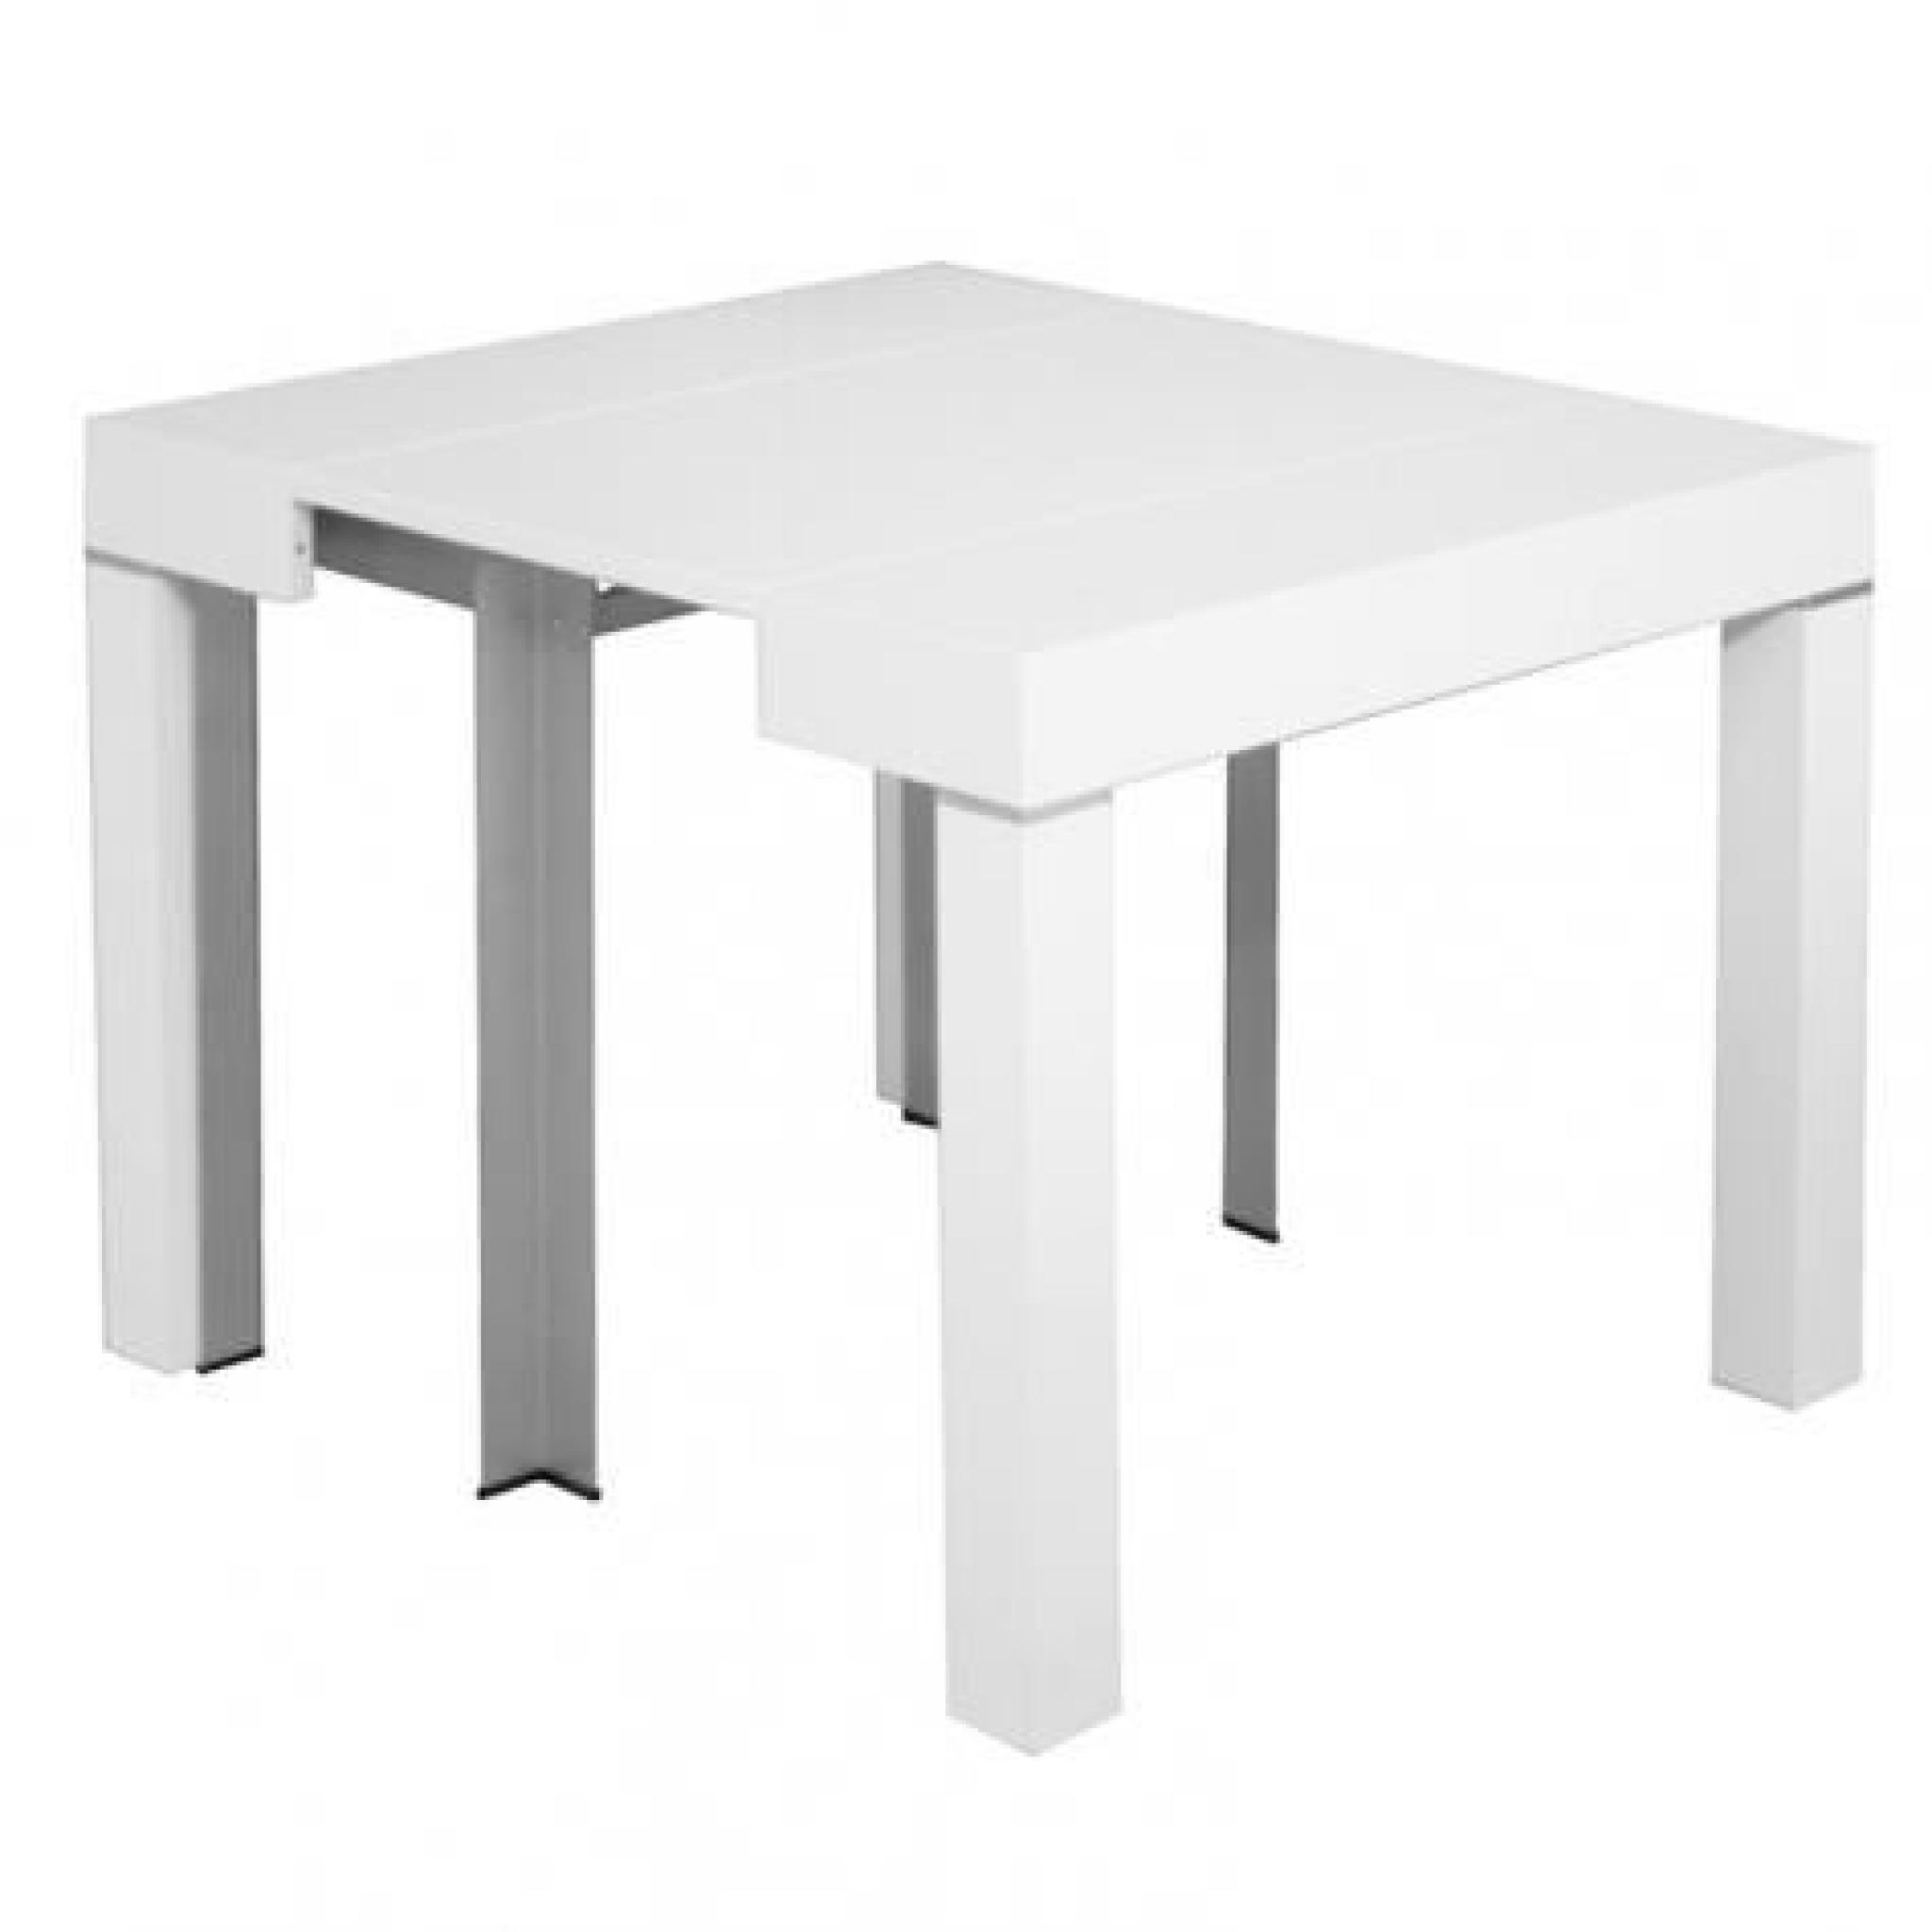 Table laquee blanche extensible 28 images table for Table laquee extensible